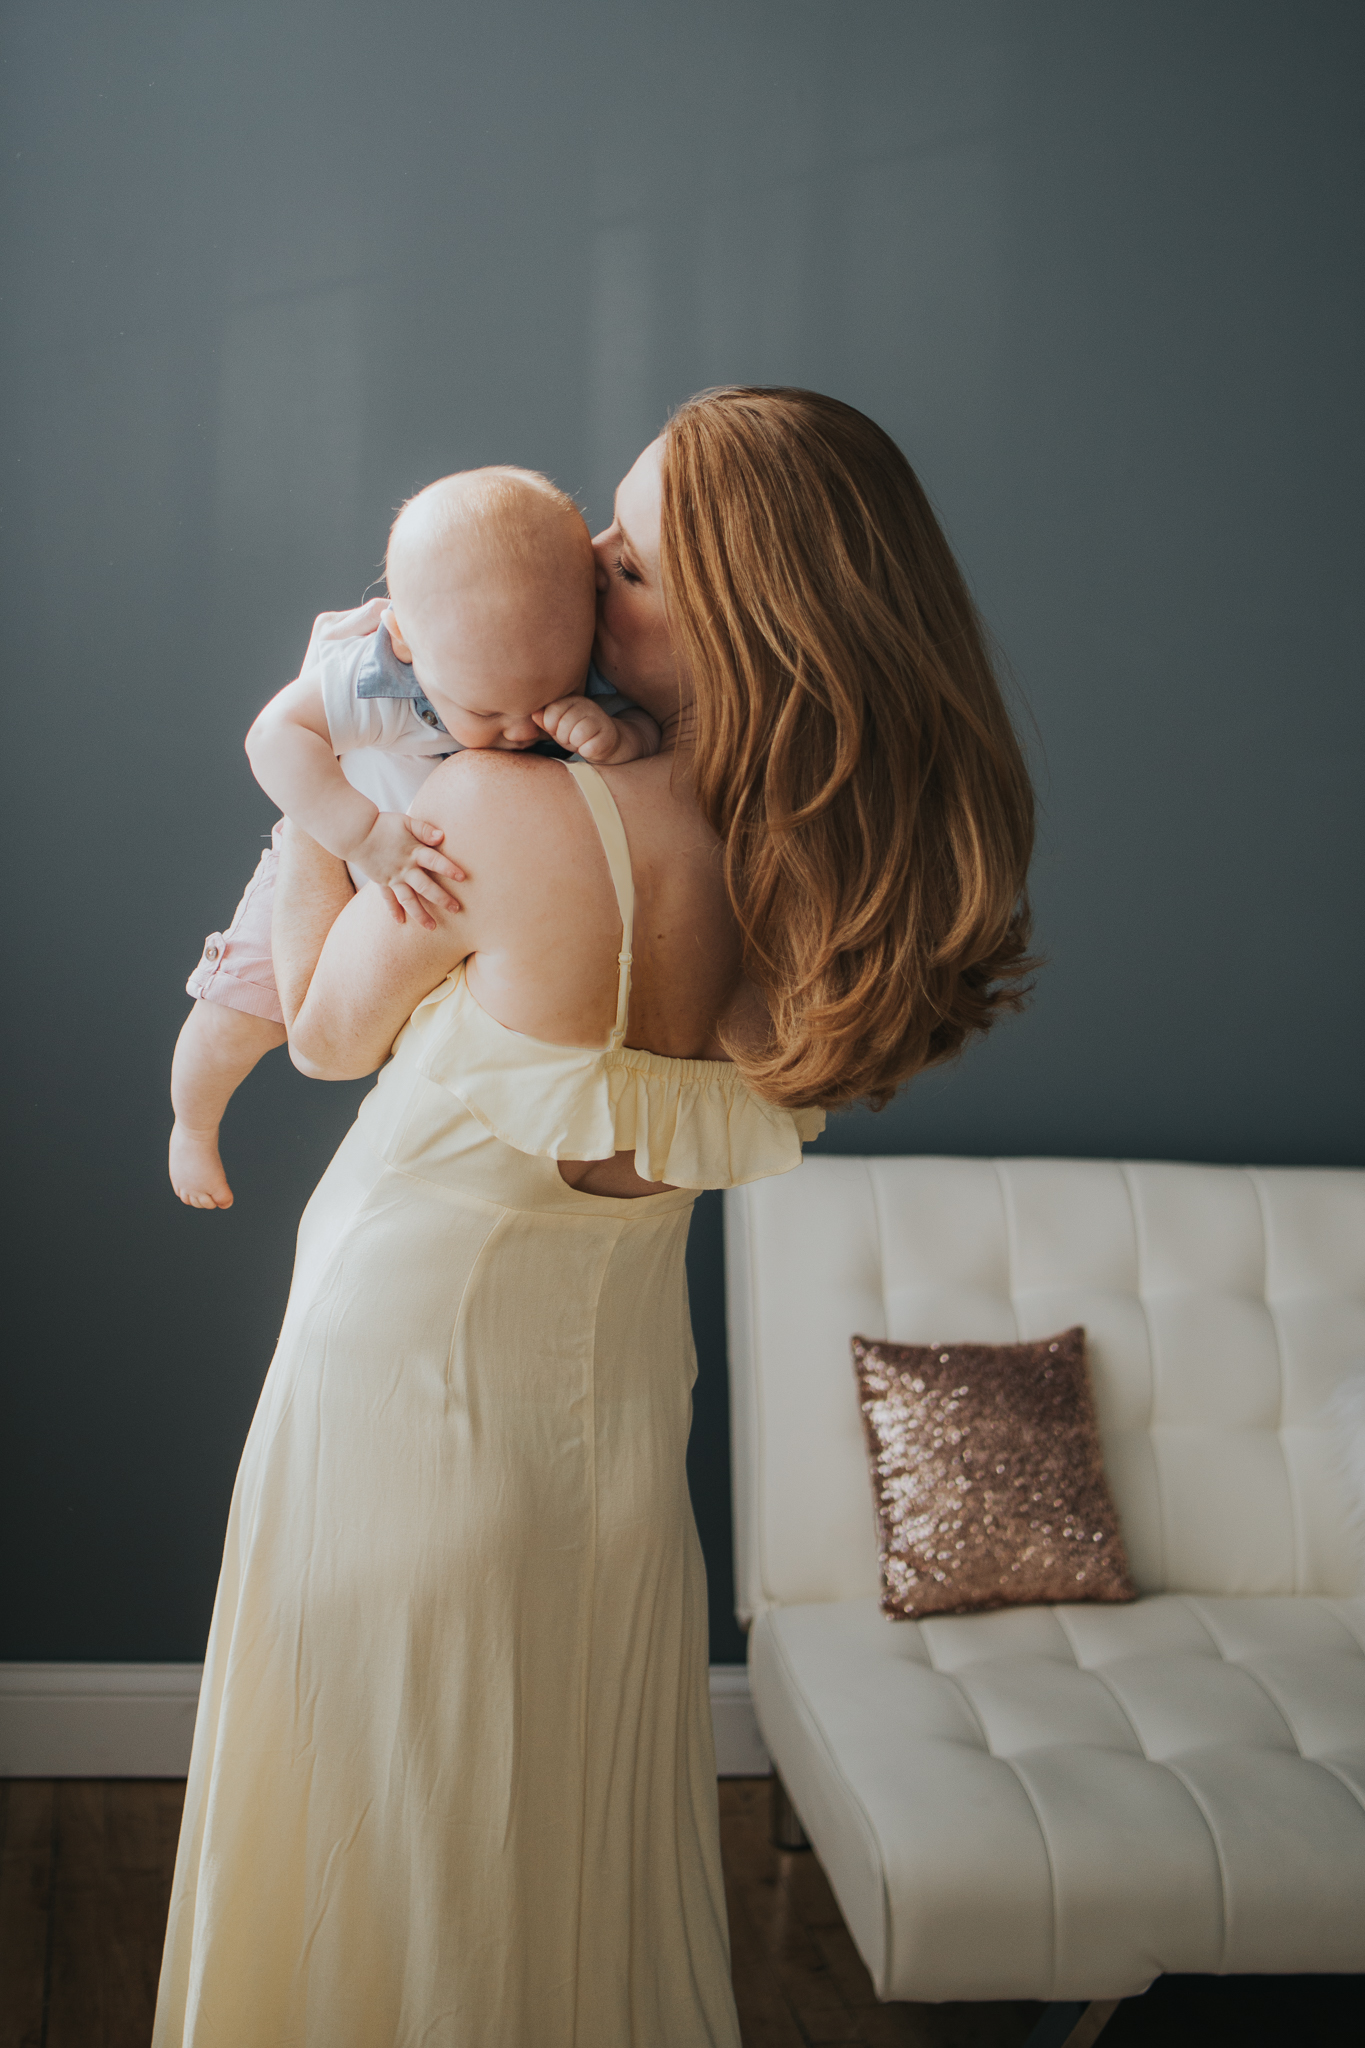 red haired mom in yellow dress snuggling with baby boy - AMG Photography